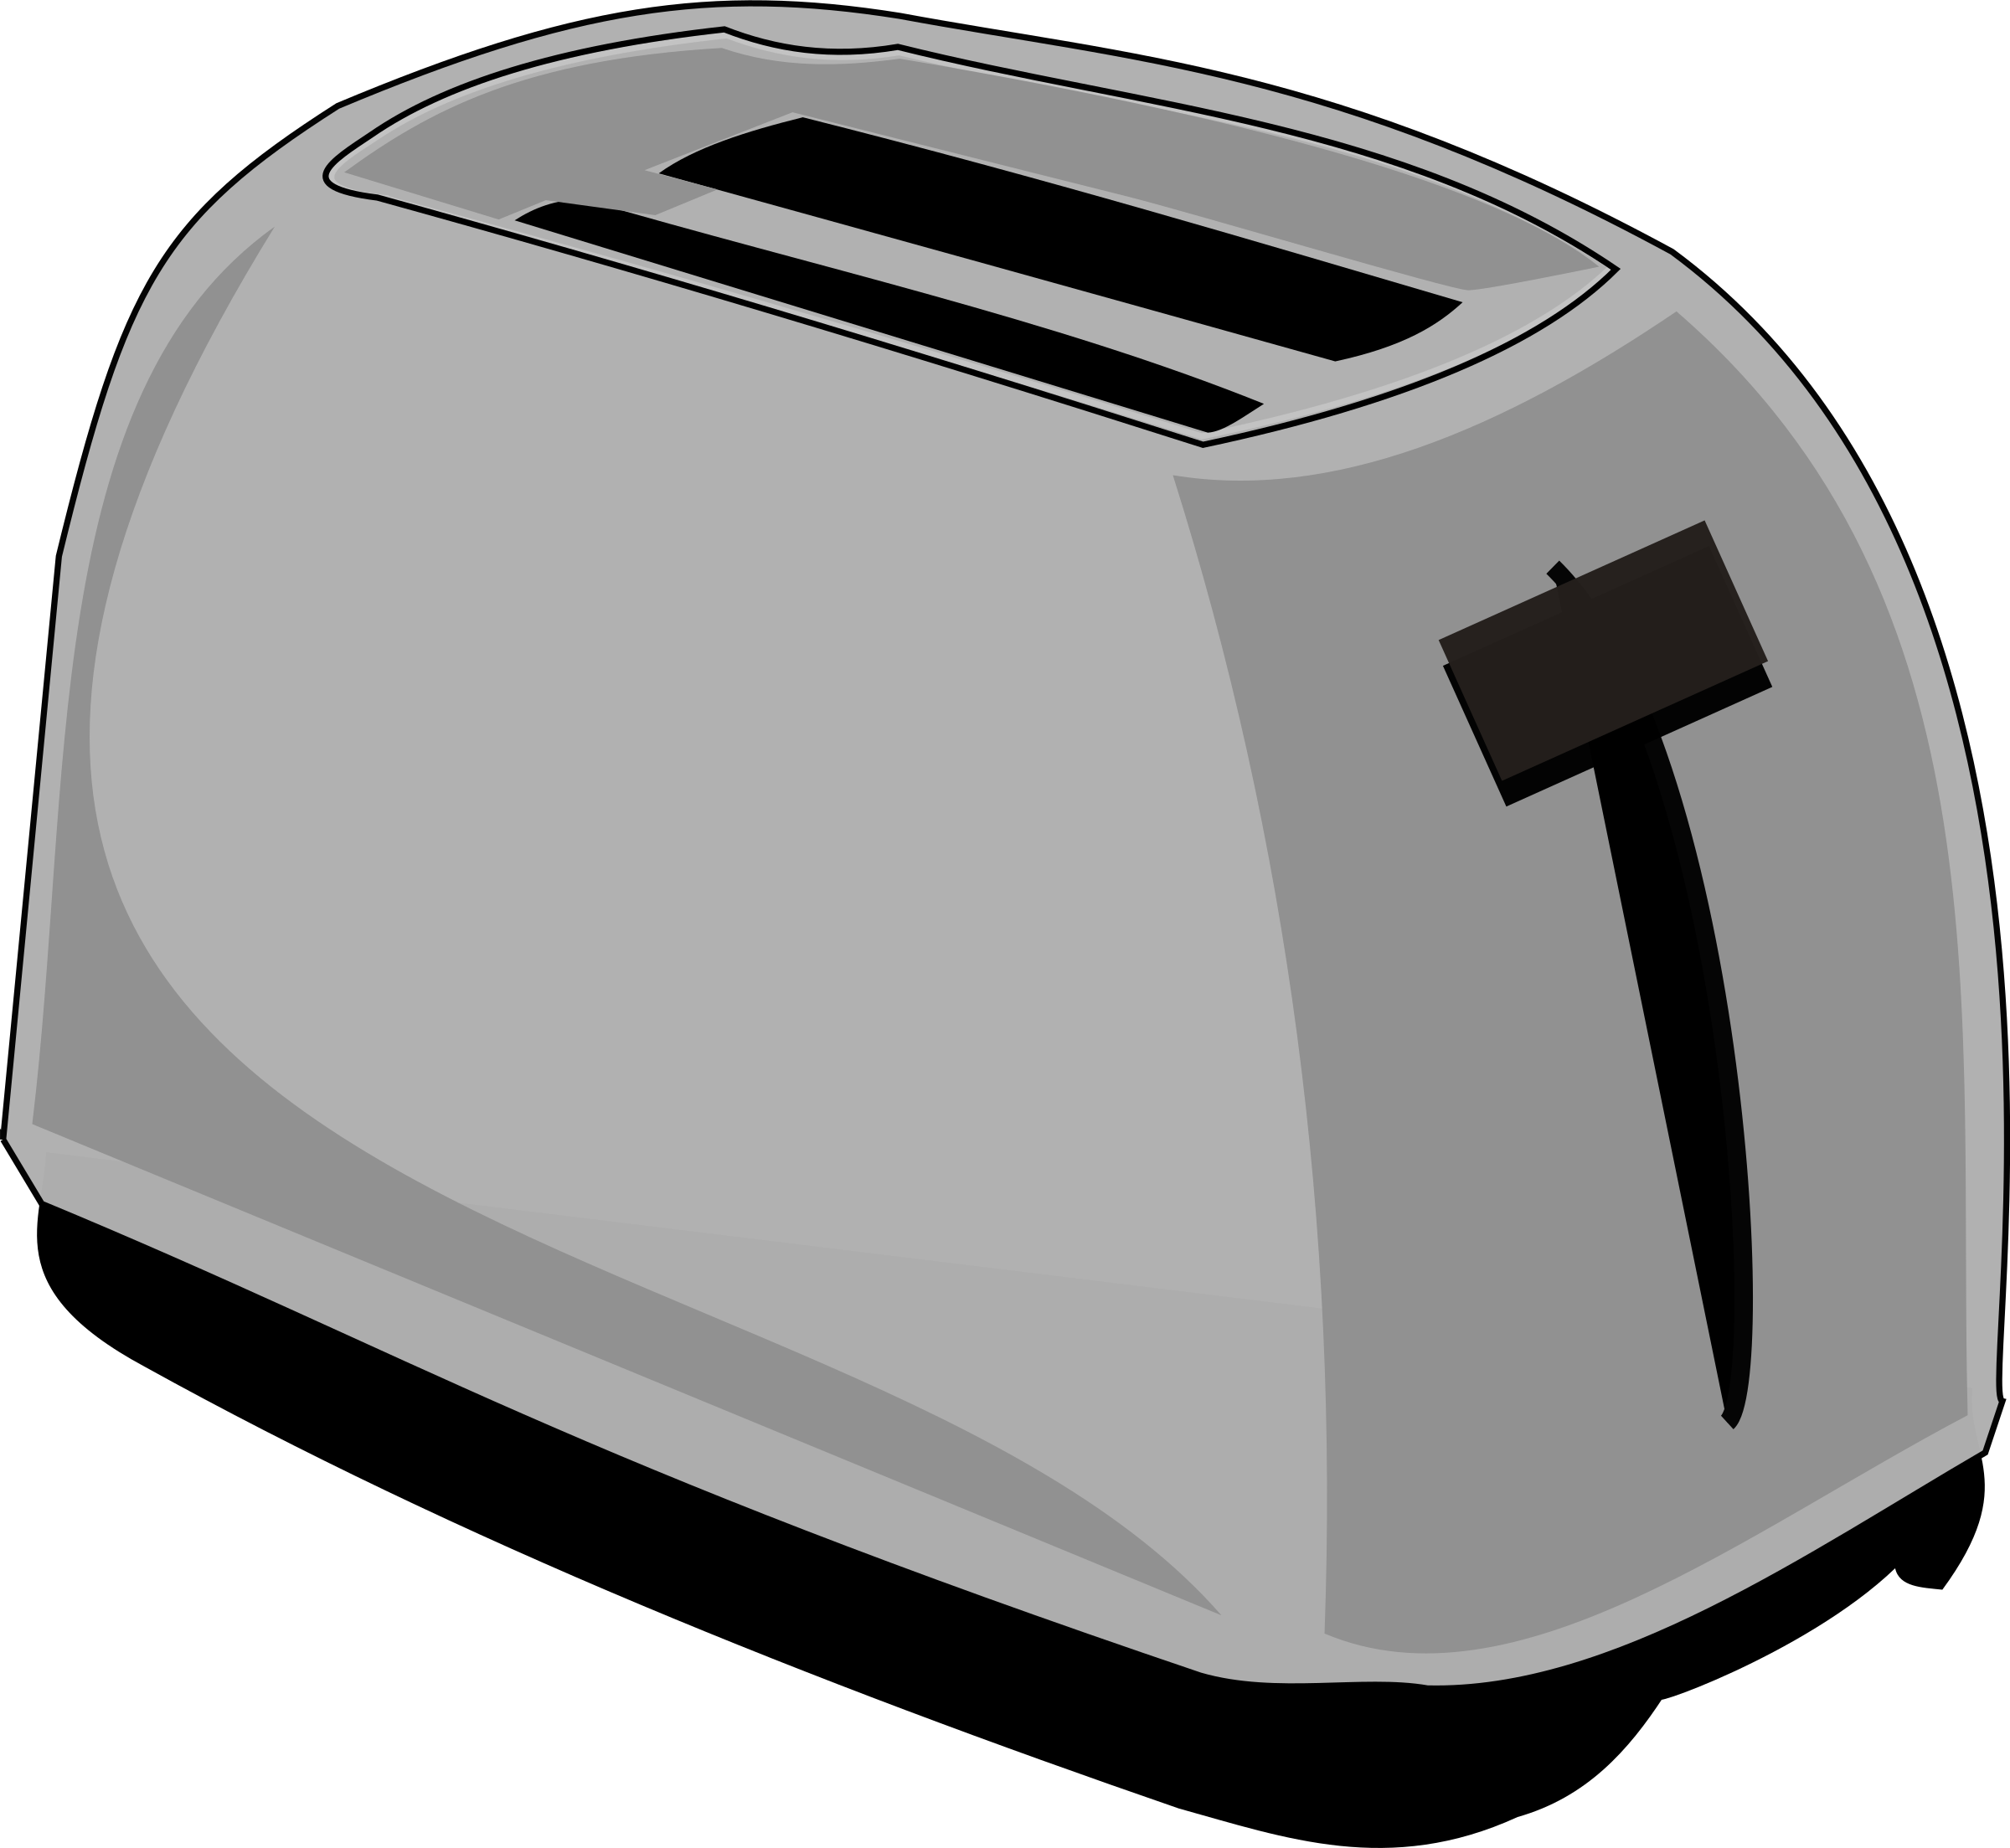 collection of high. Toaster clipart sketch